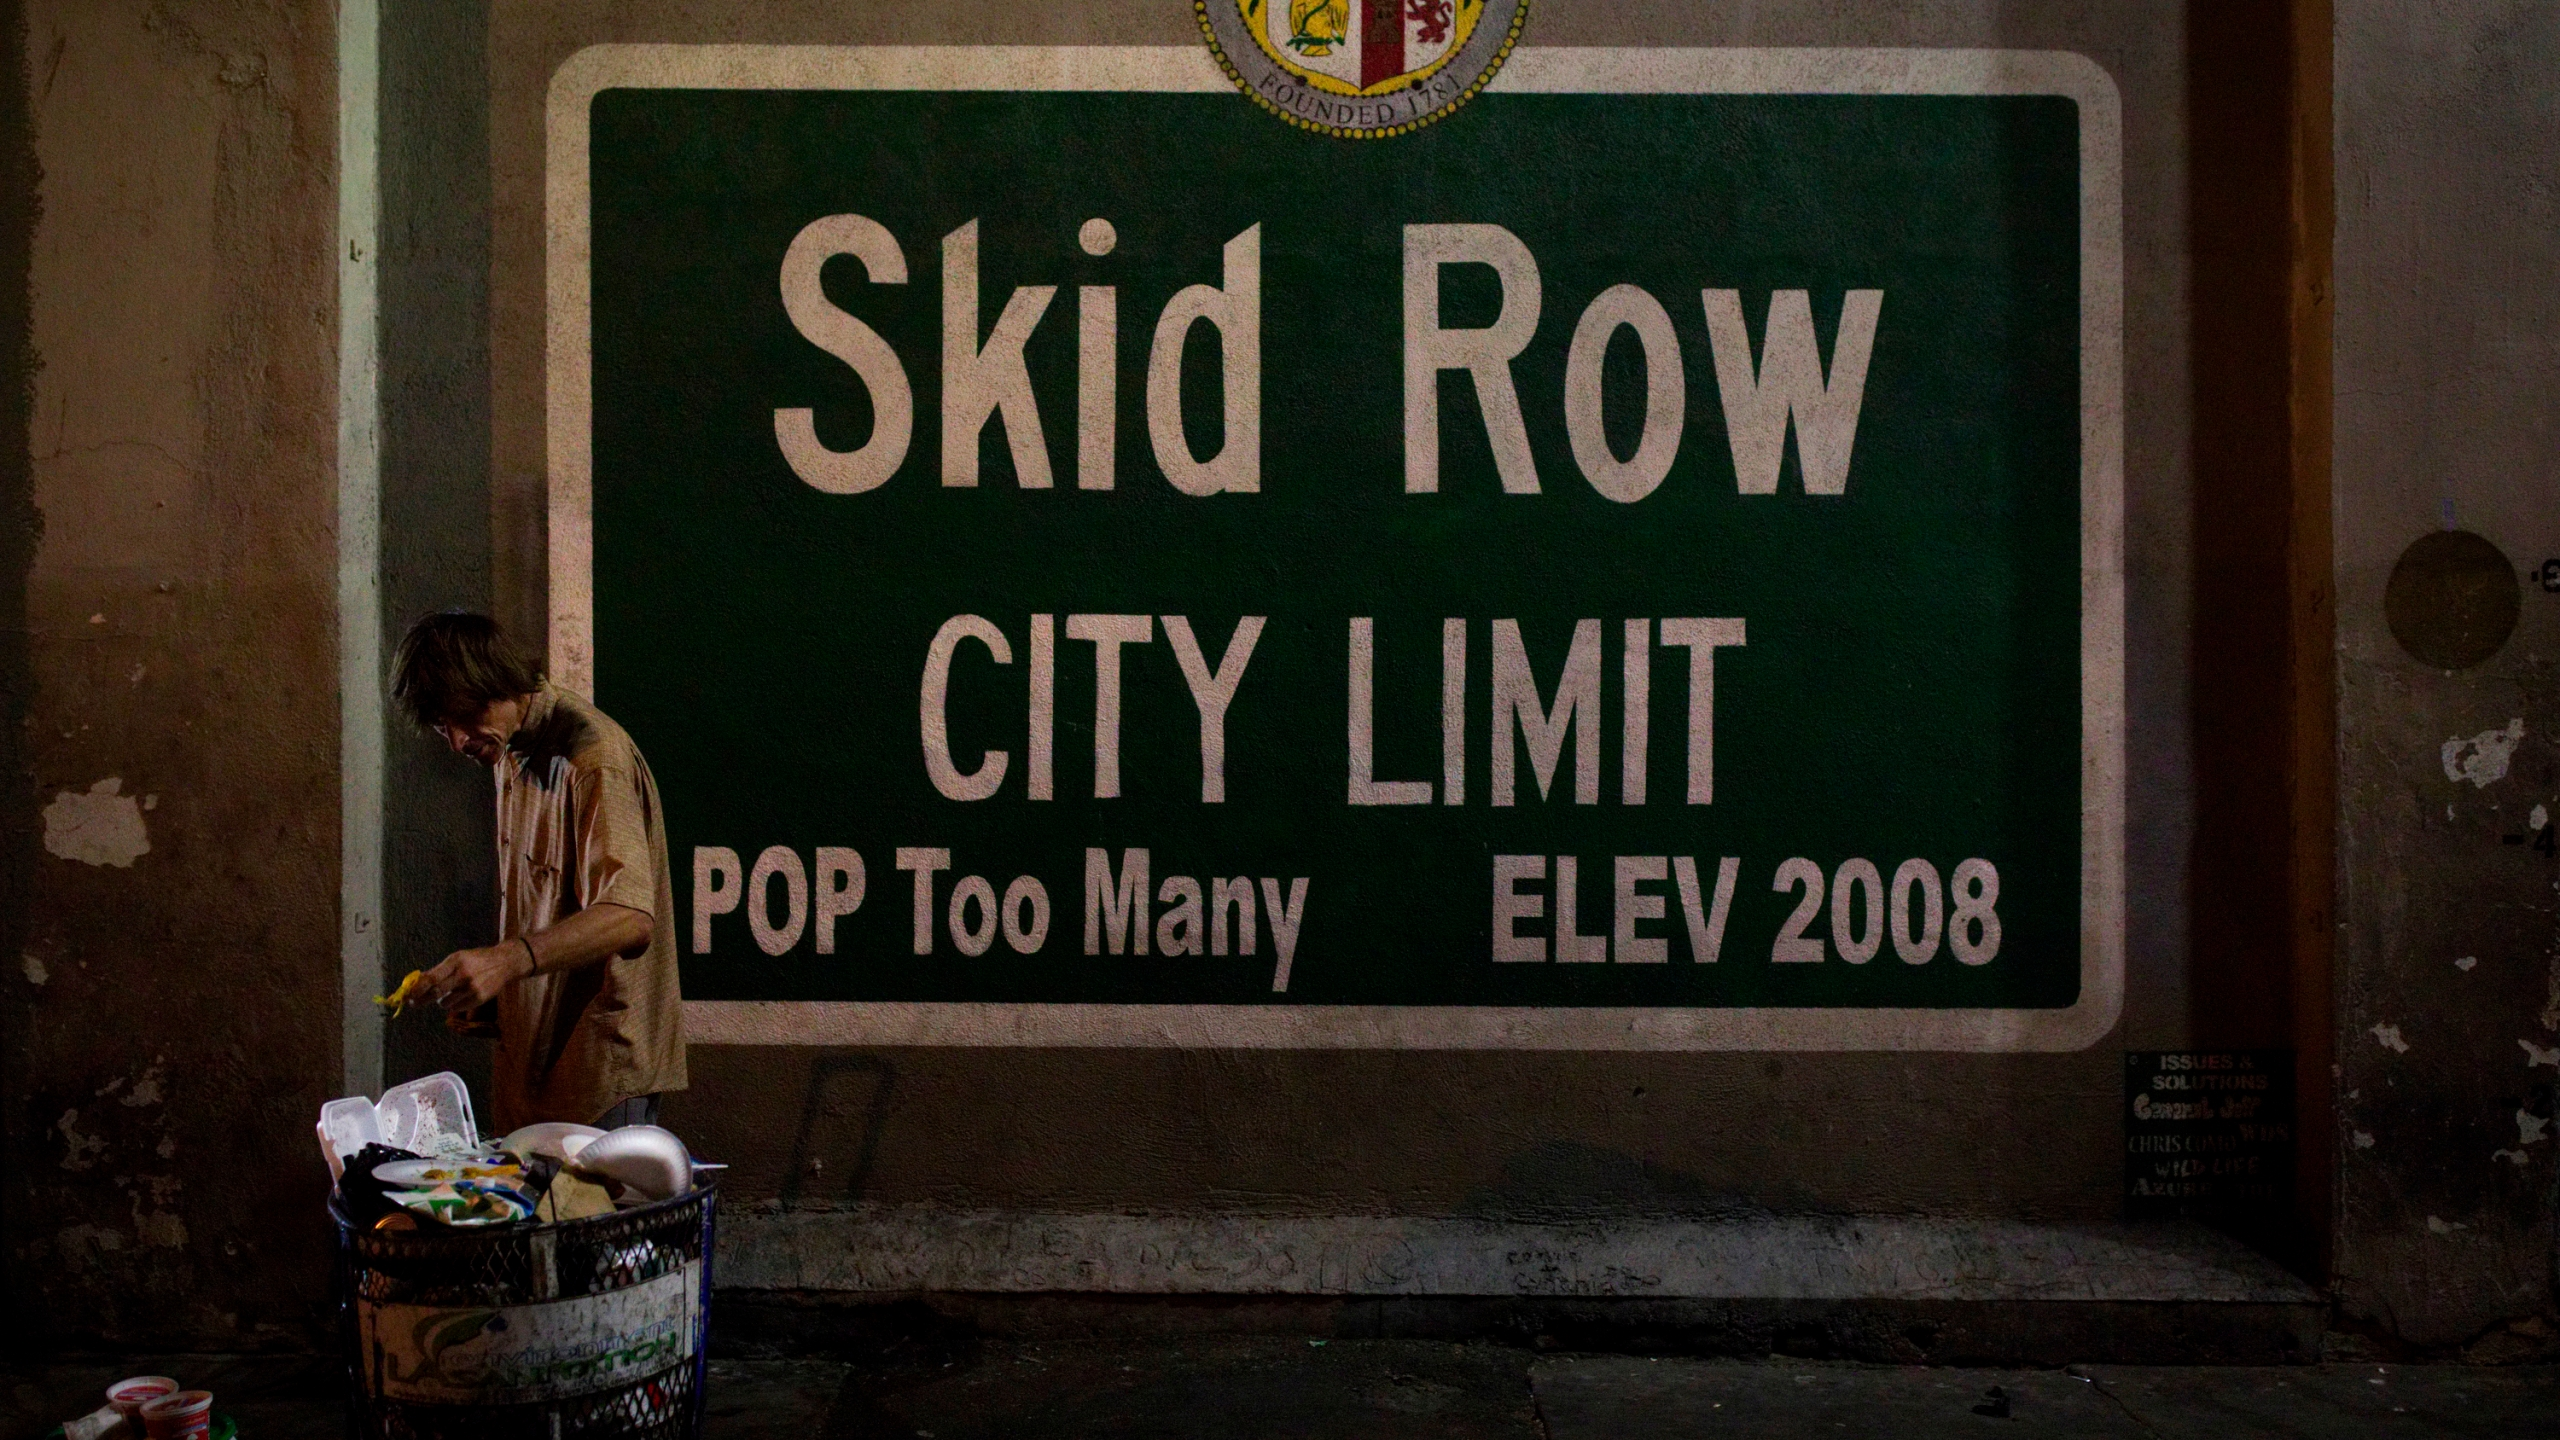 A homeless man takes food from a trash can in Los Angeles' Skid Row area, home to the nation's largest concentration of homeless people in Los Angeles, on Oct. 28, 2017. (Jae C. Hong / Associated Press)